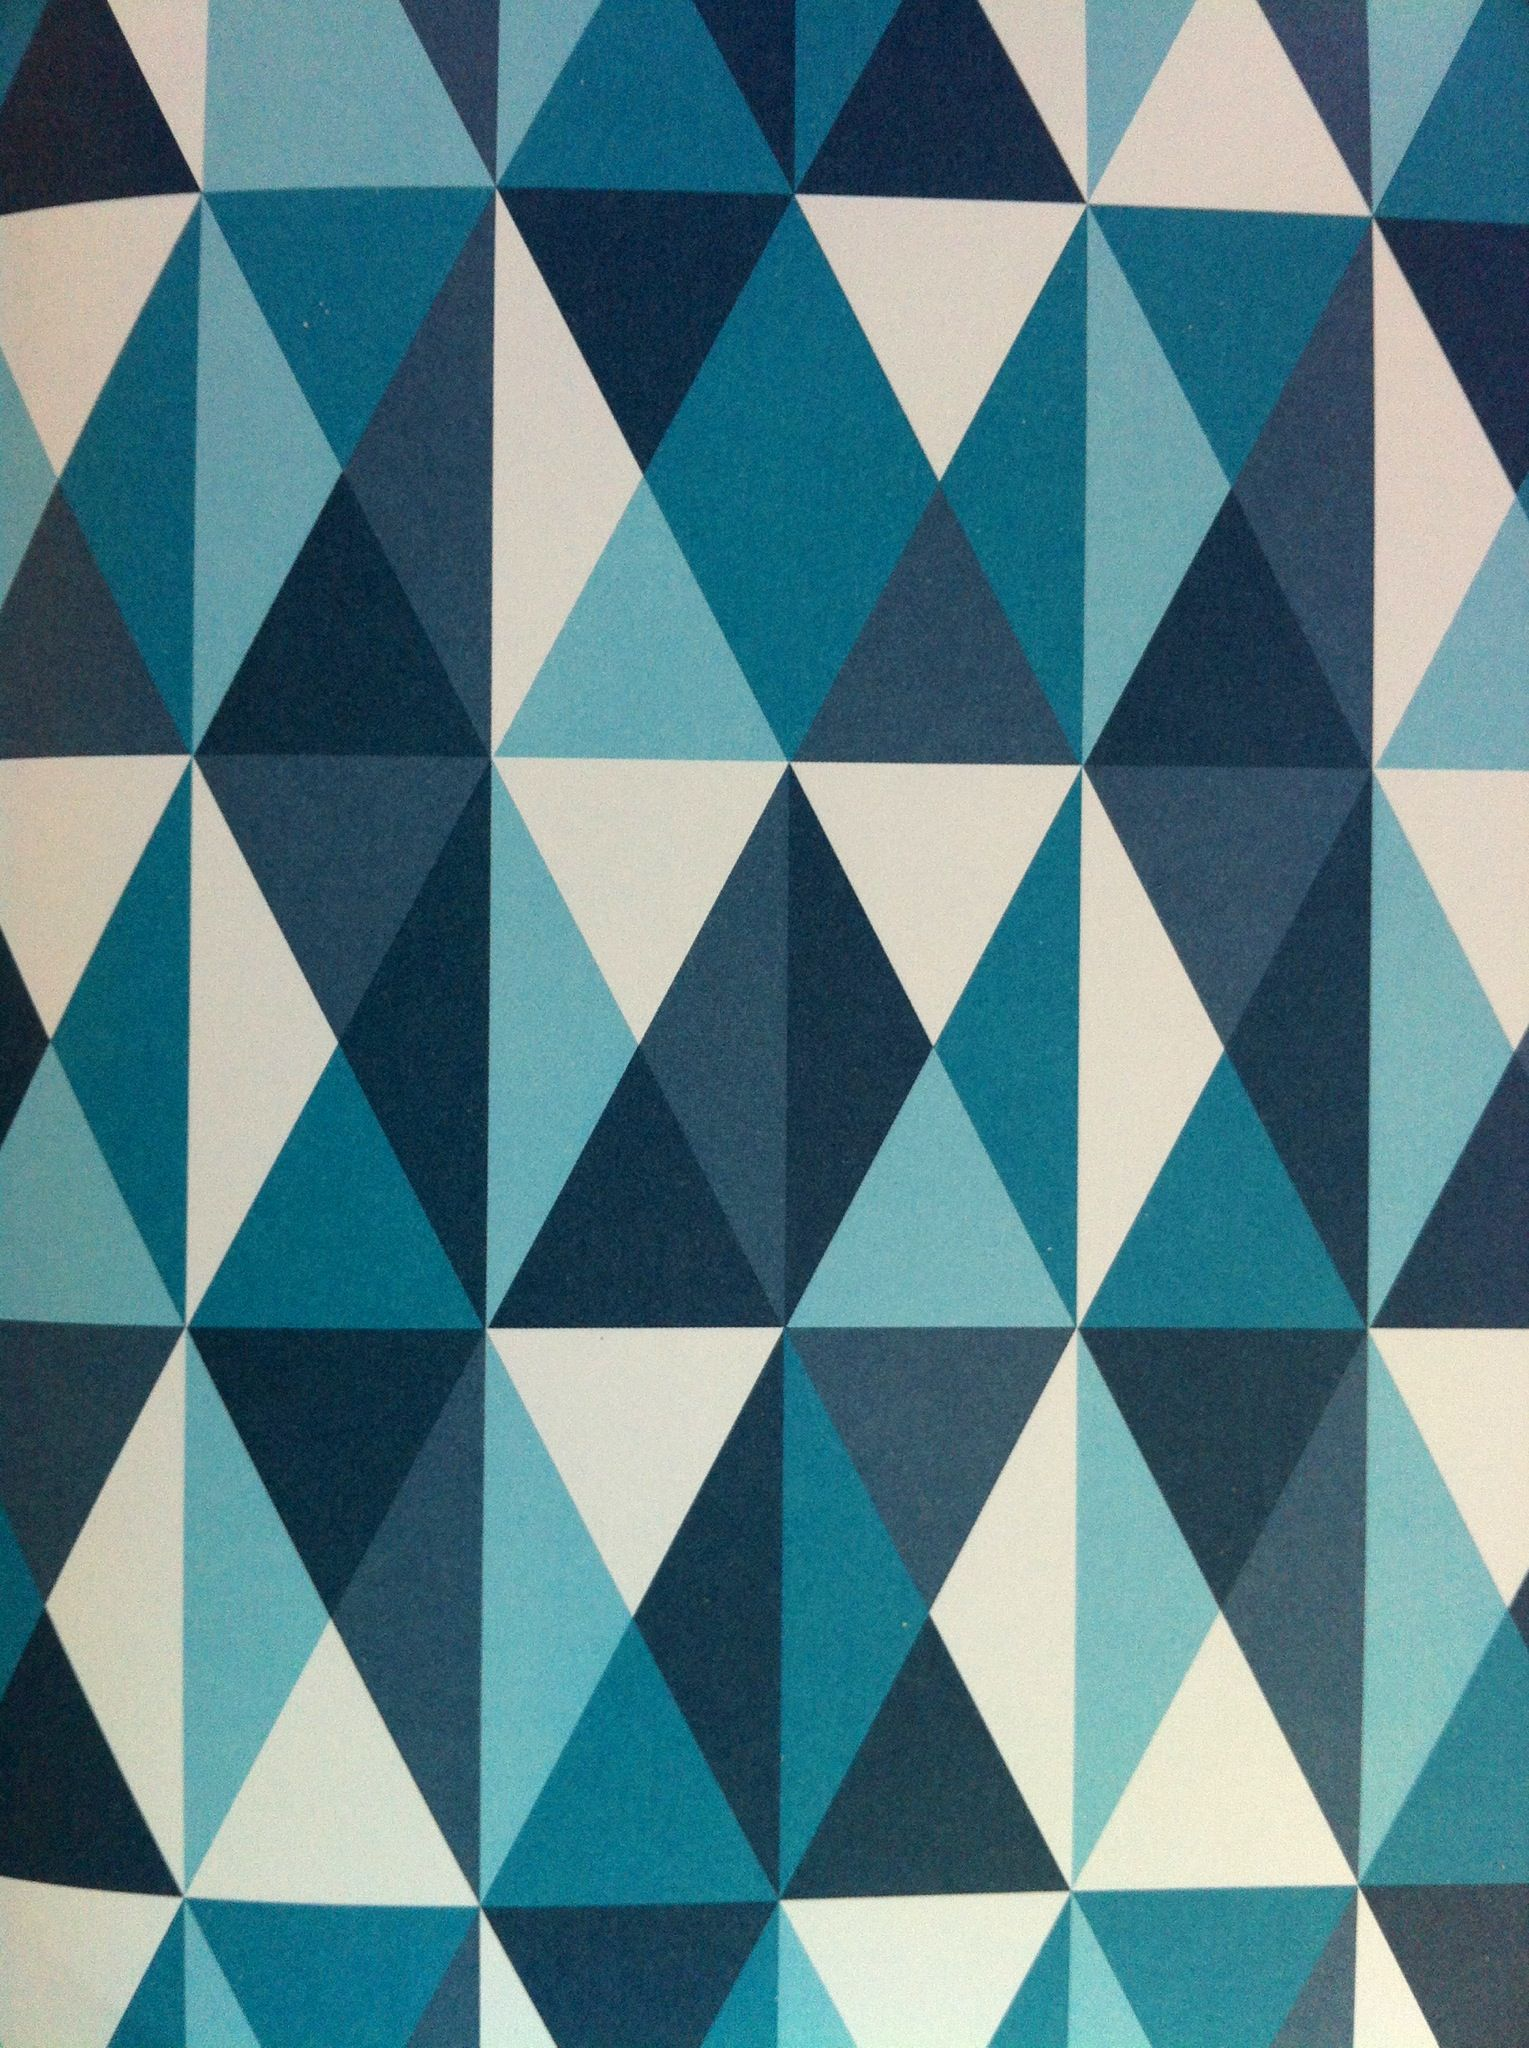 Geometric Art, Pattern Design, Pattern